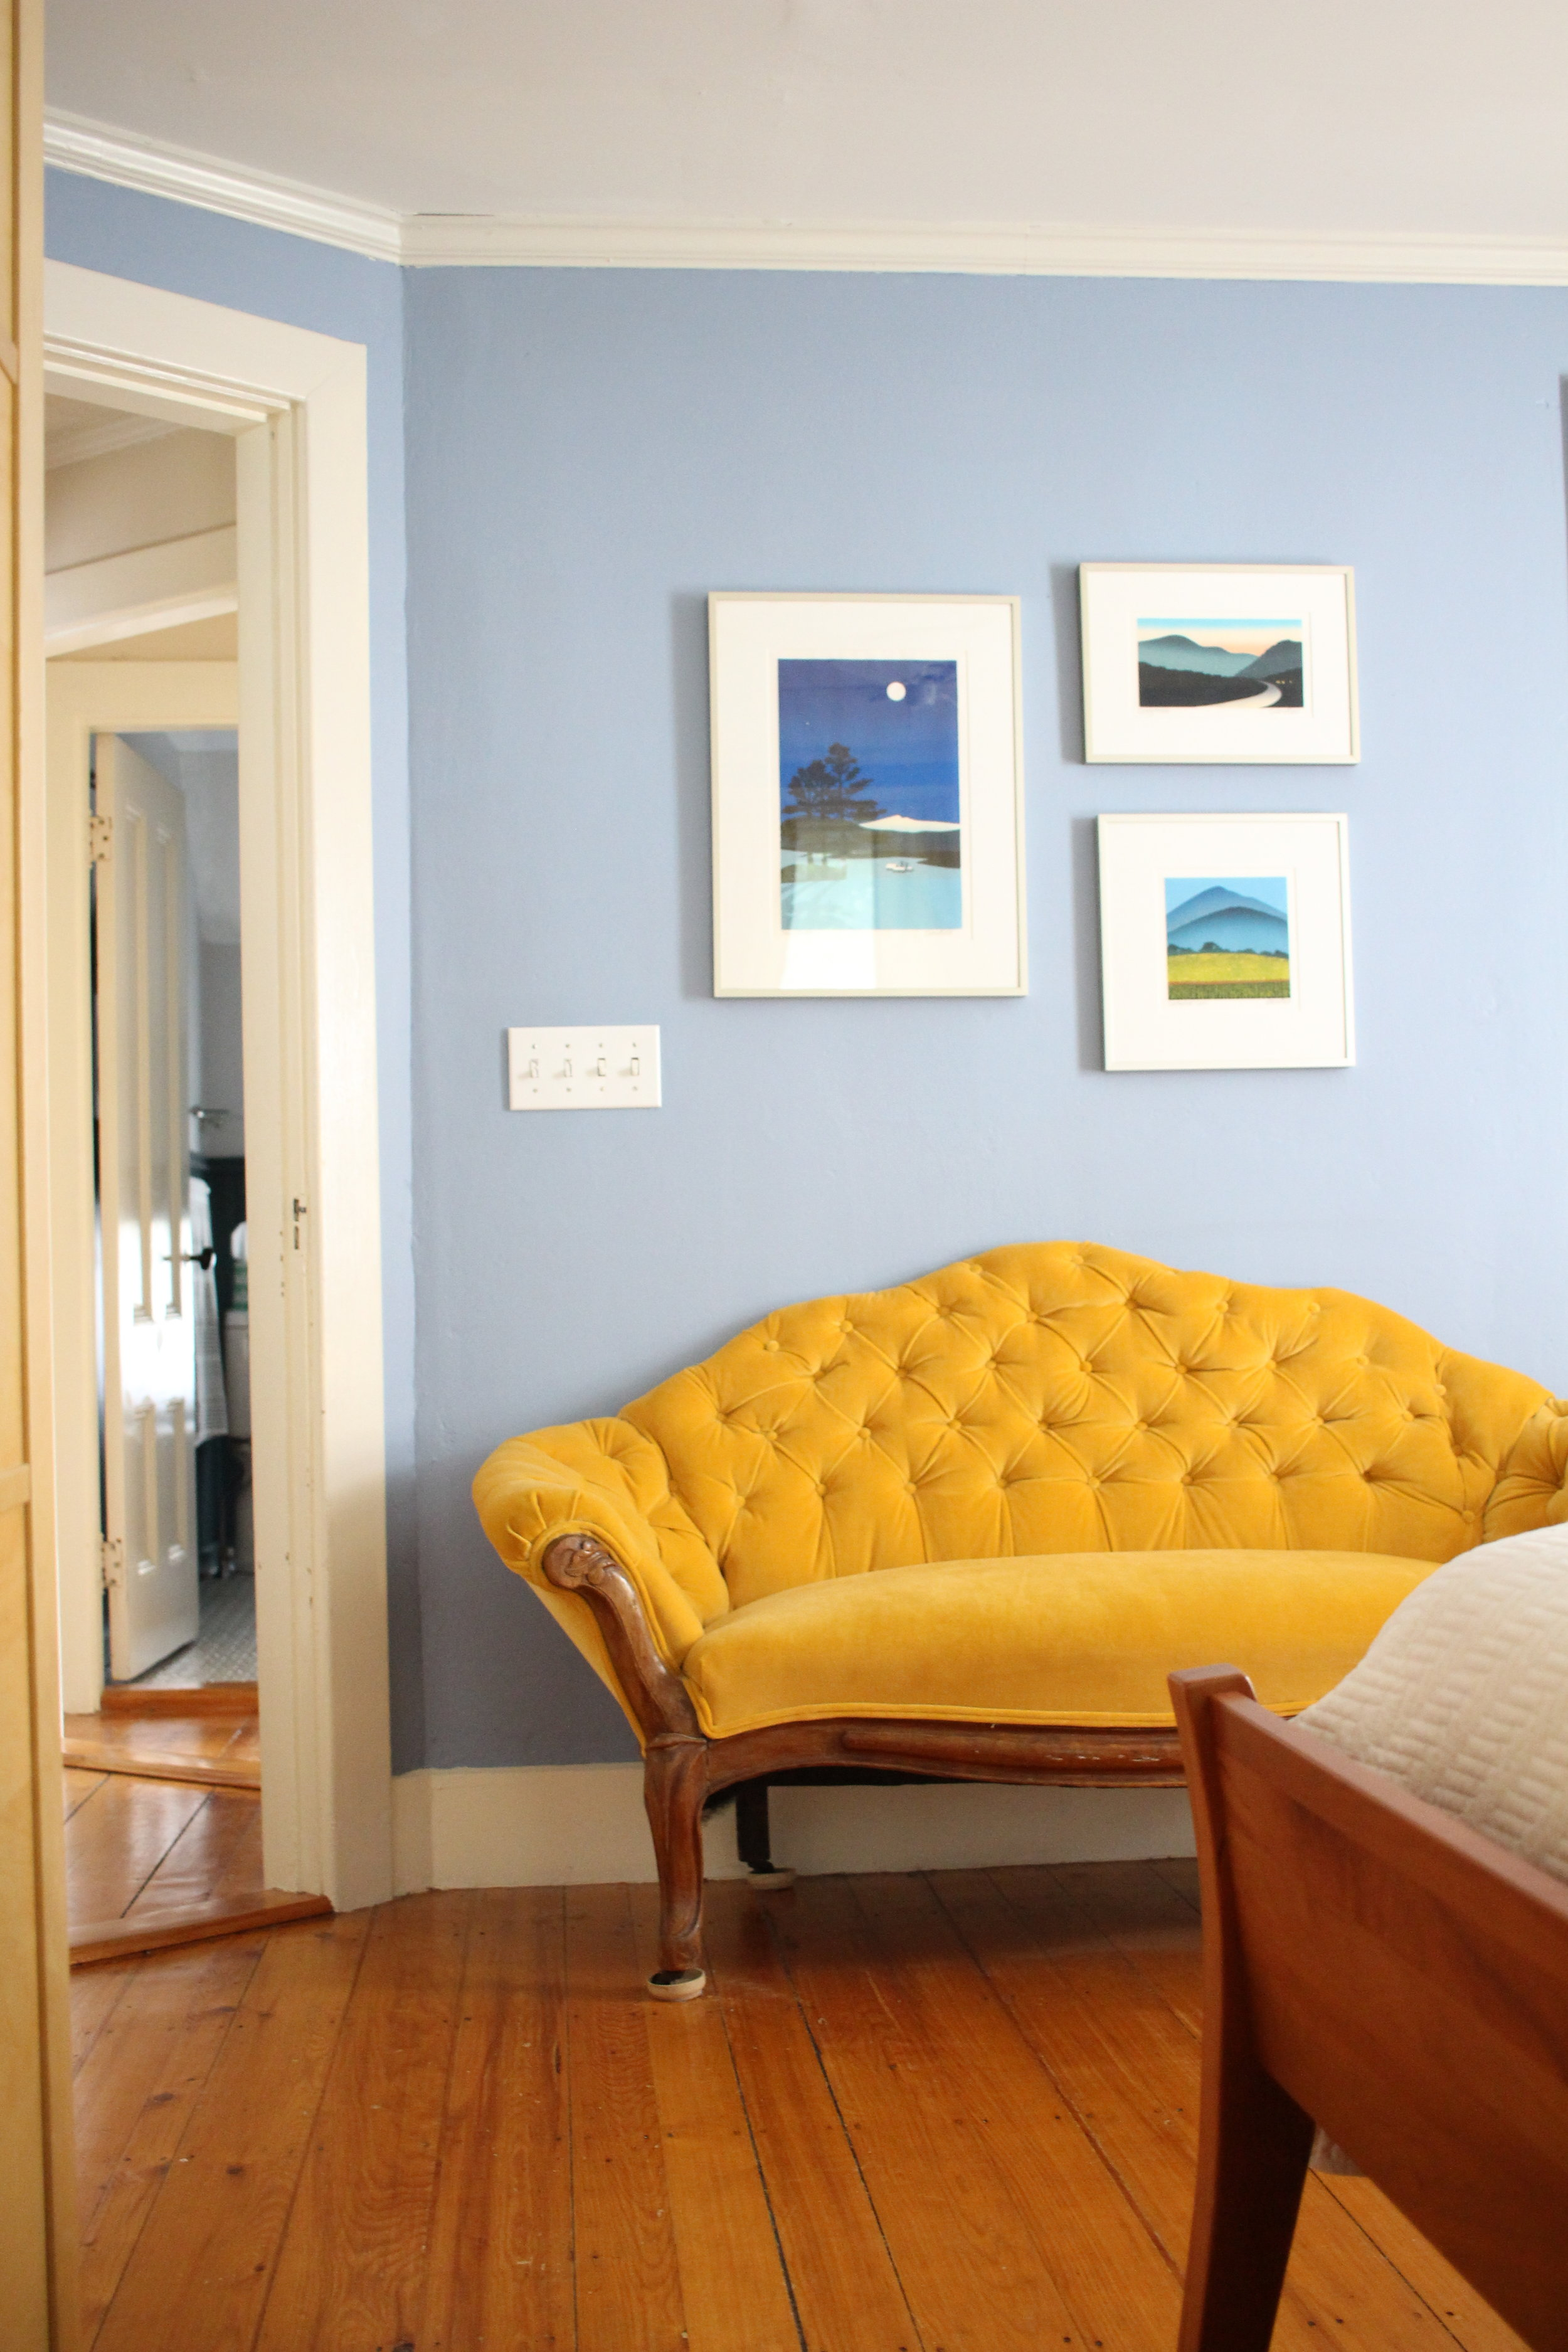 Little Couch For Bedroom We Ask Little Yellow Couch Style Matters Podcast Hosts Why Style